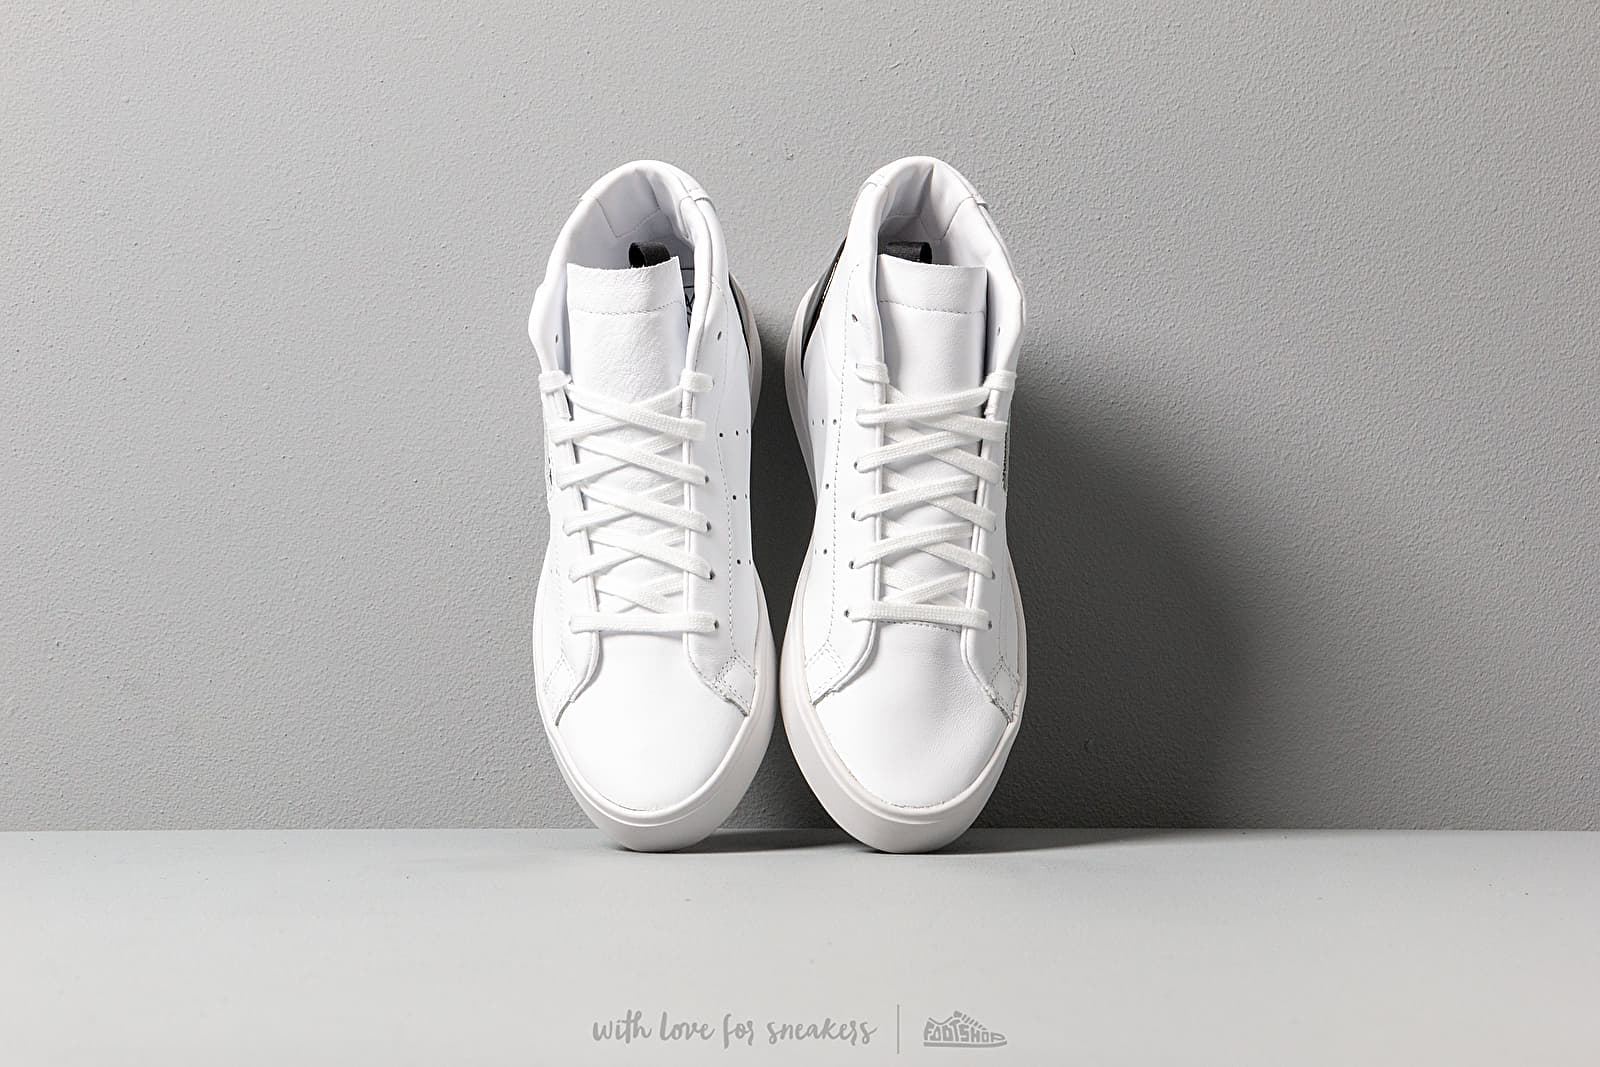 adidas Sleek Mid WFtw White Ftw White Core Black